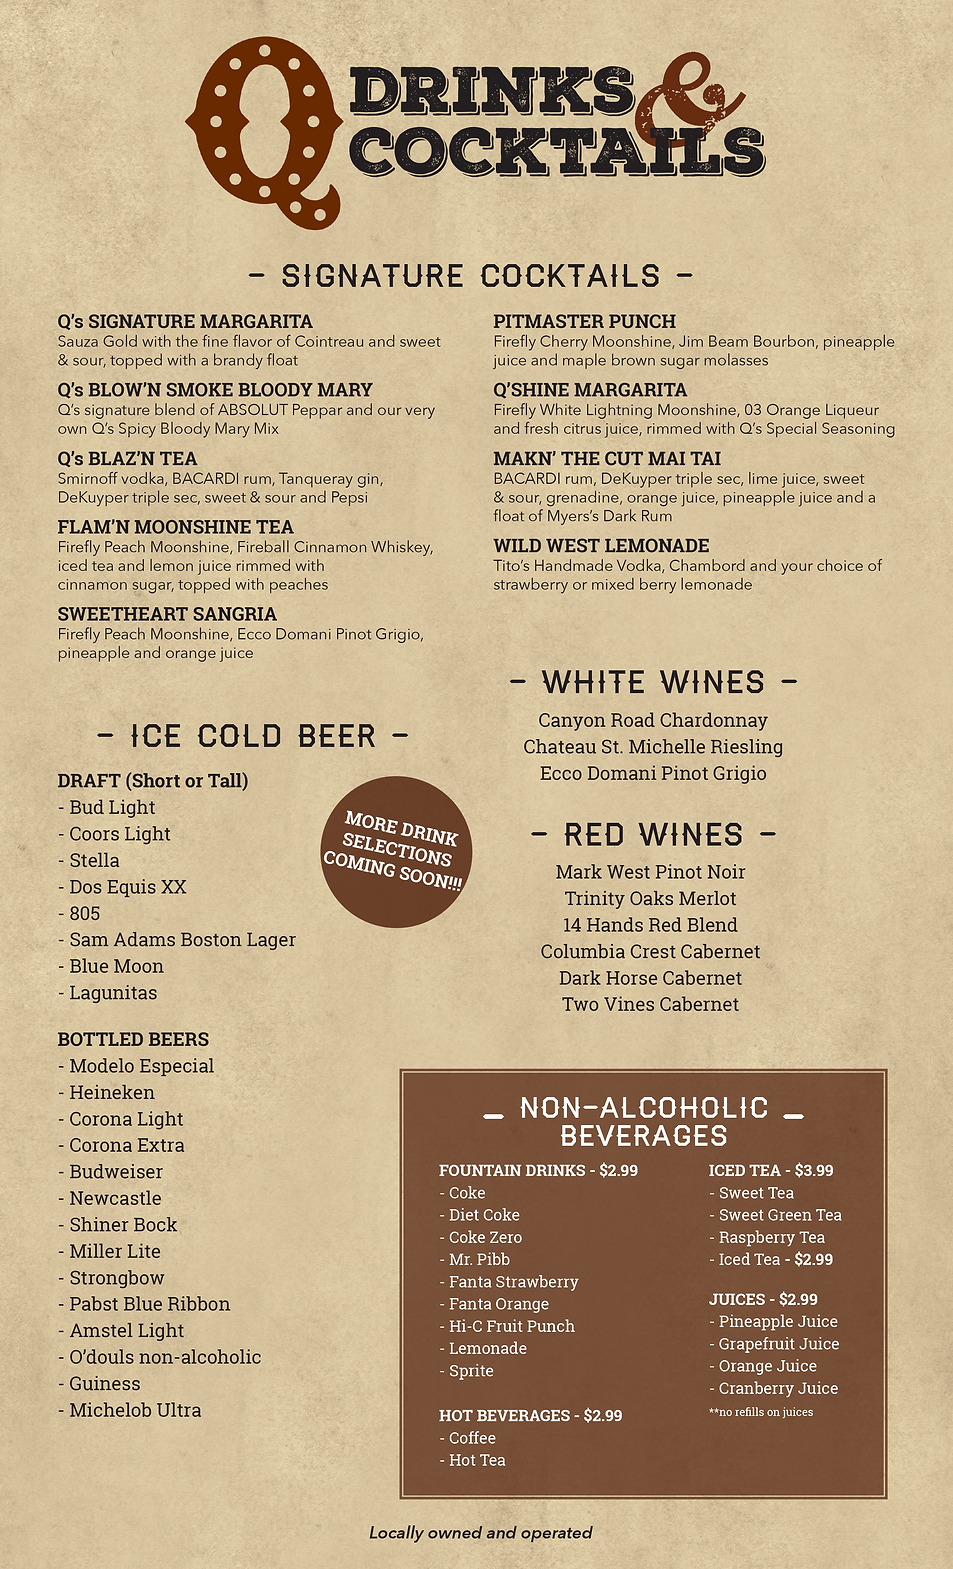 Q Smokehouse Drink Menu PROOF copy.png